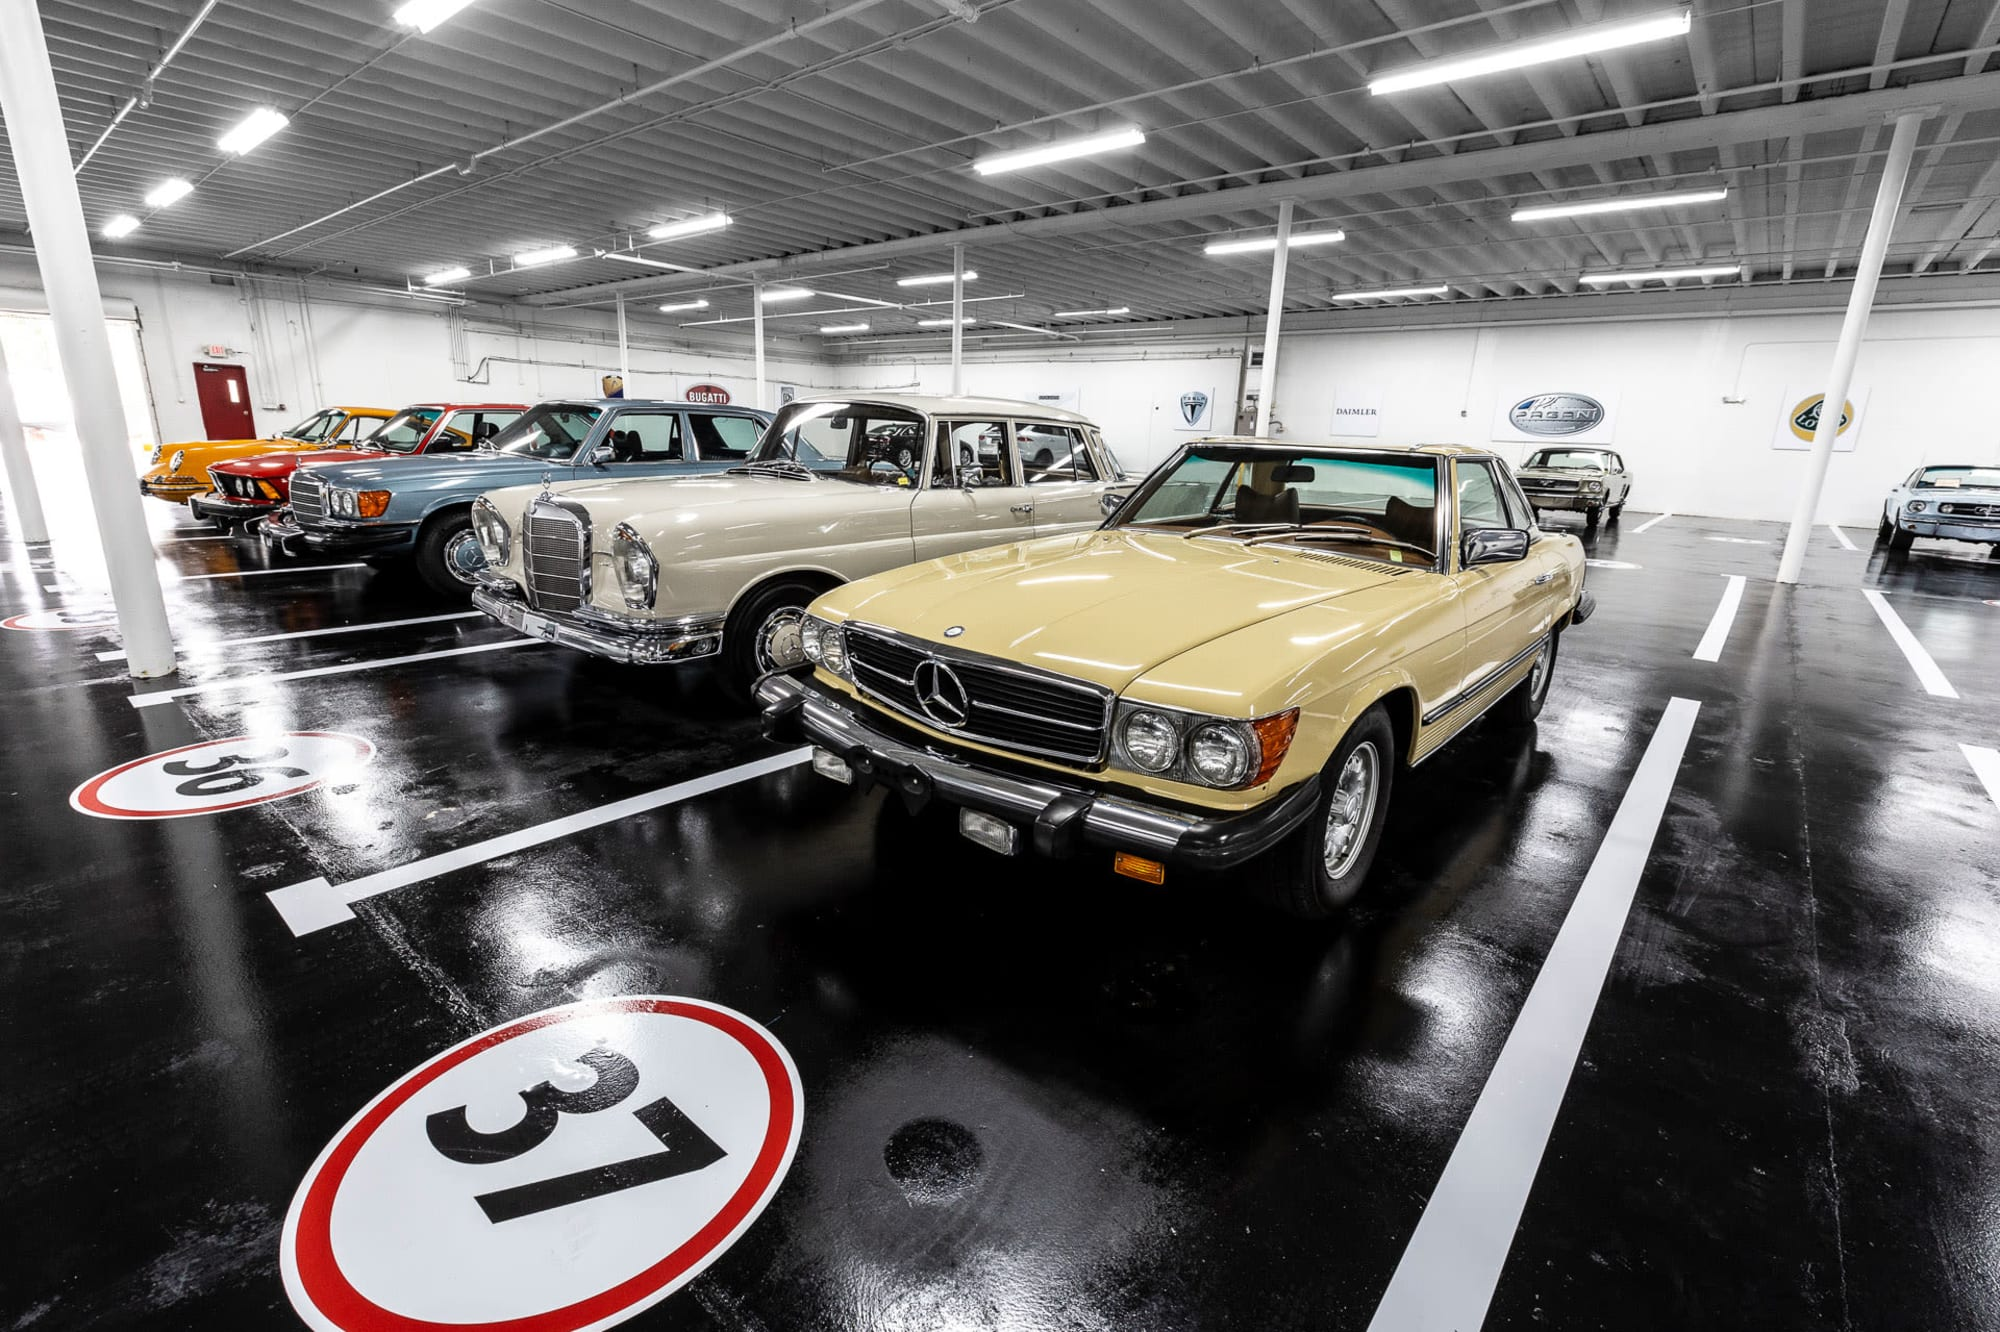 A Mercedes in front of a row of luxury cars inside the secure garage of Premier Car Storage in Miami, Florida